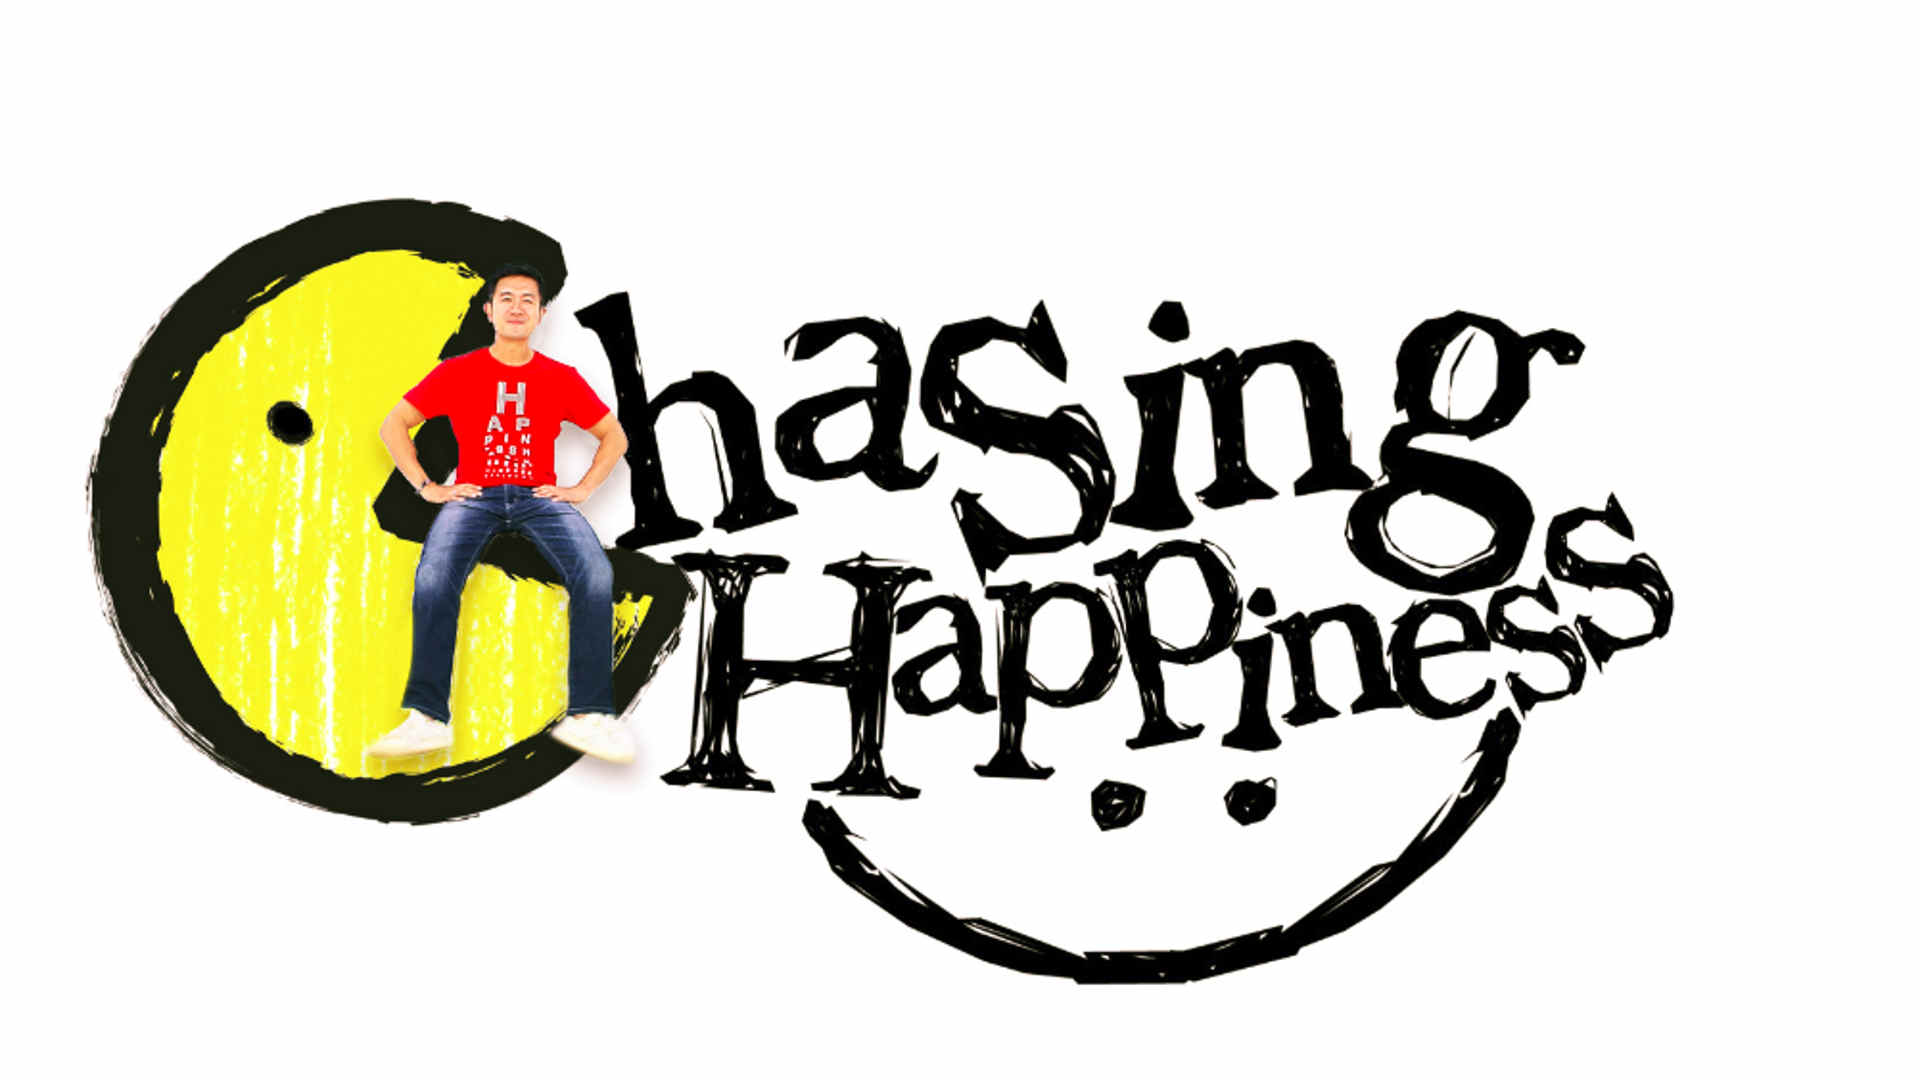 Watch Full Movie - Chasing Happiness - Eye Ball Happiness